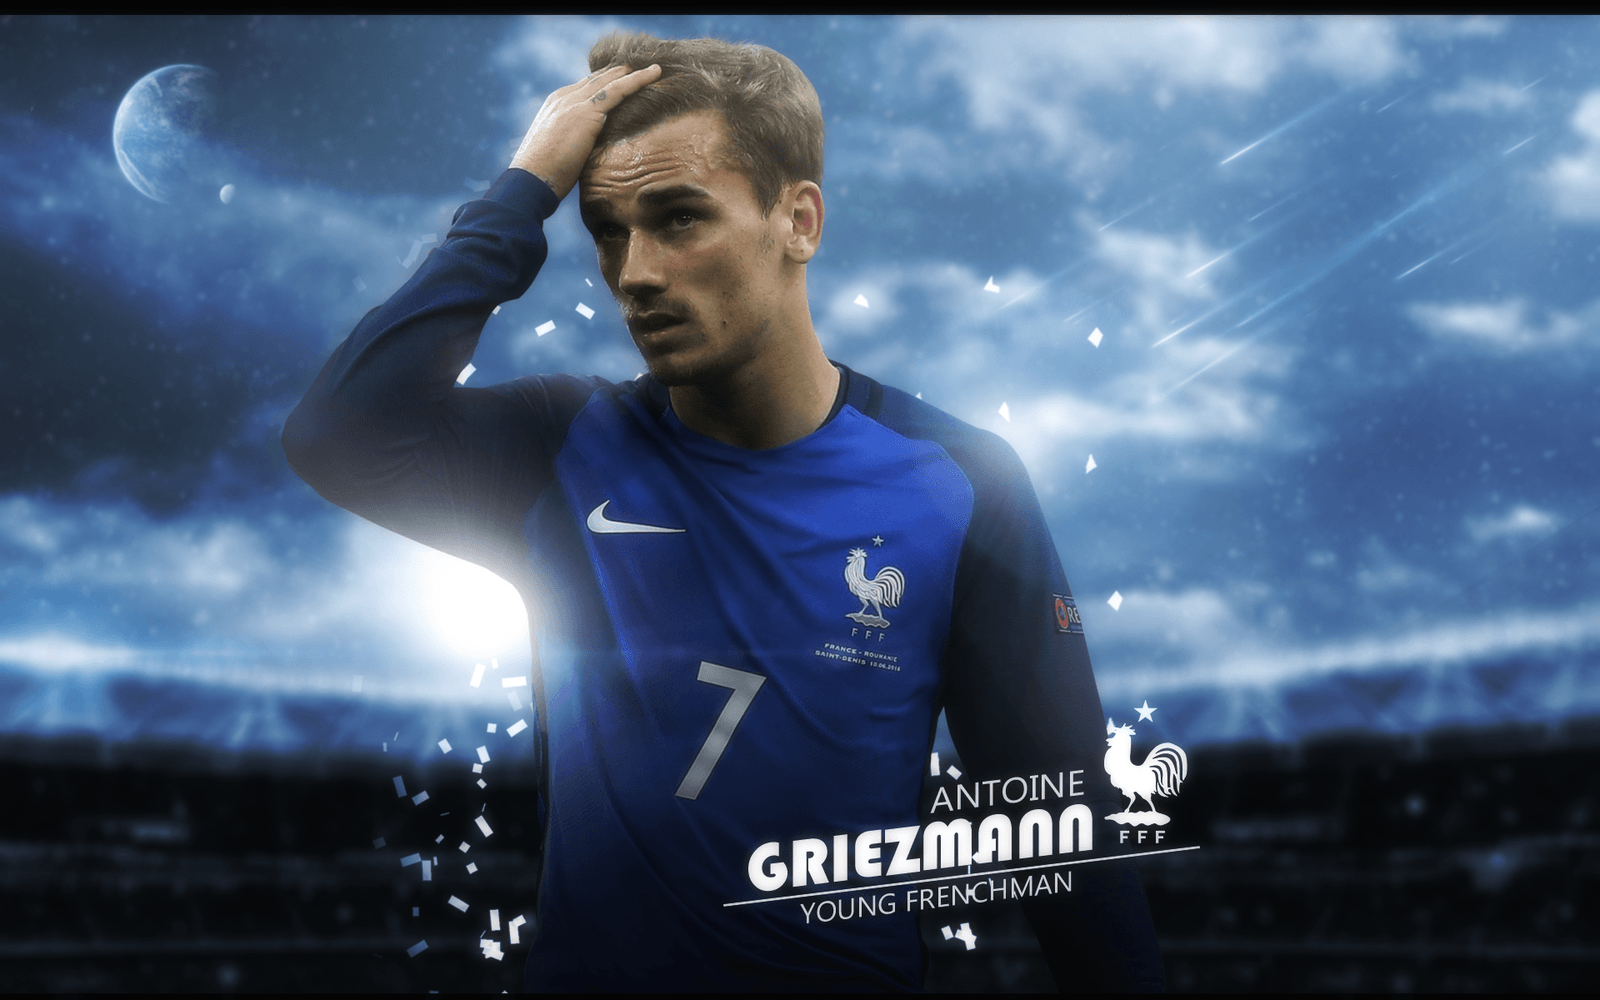 Antoine Griezmann Wallpaper (France) by ChrisRamos4 on DeviantArt